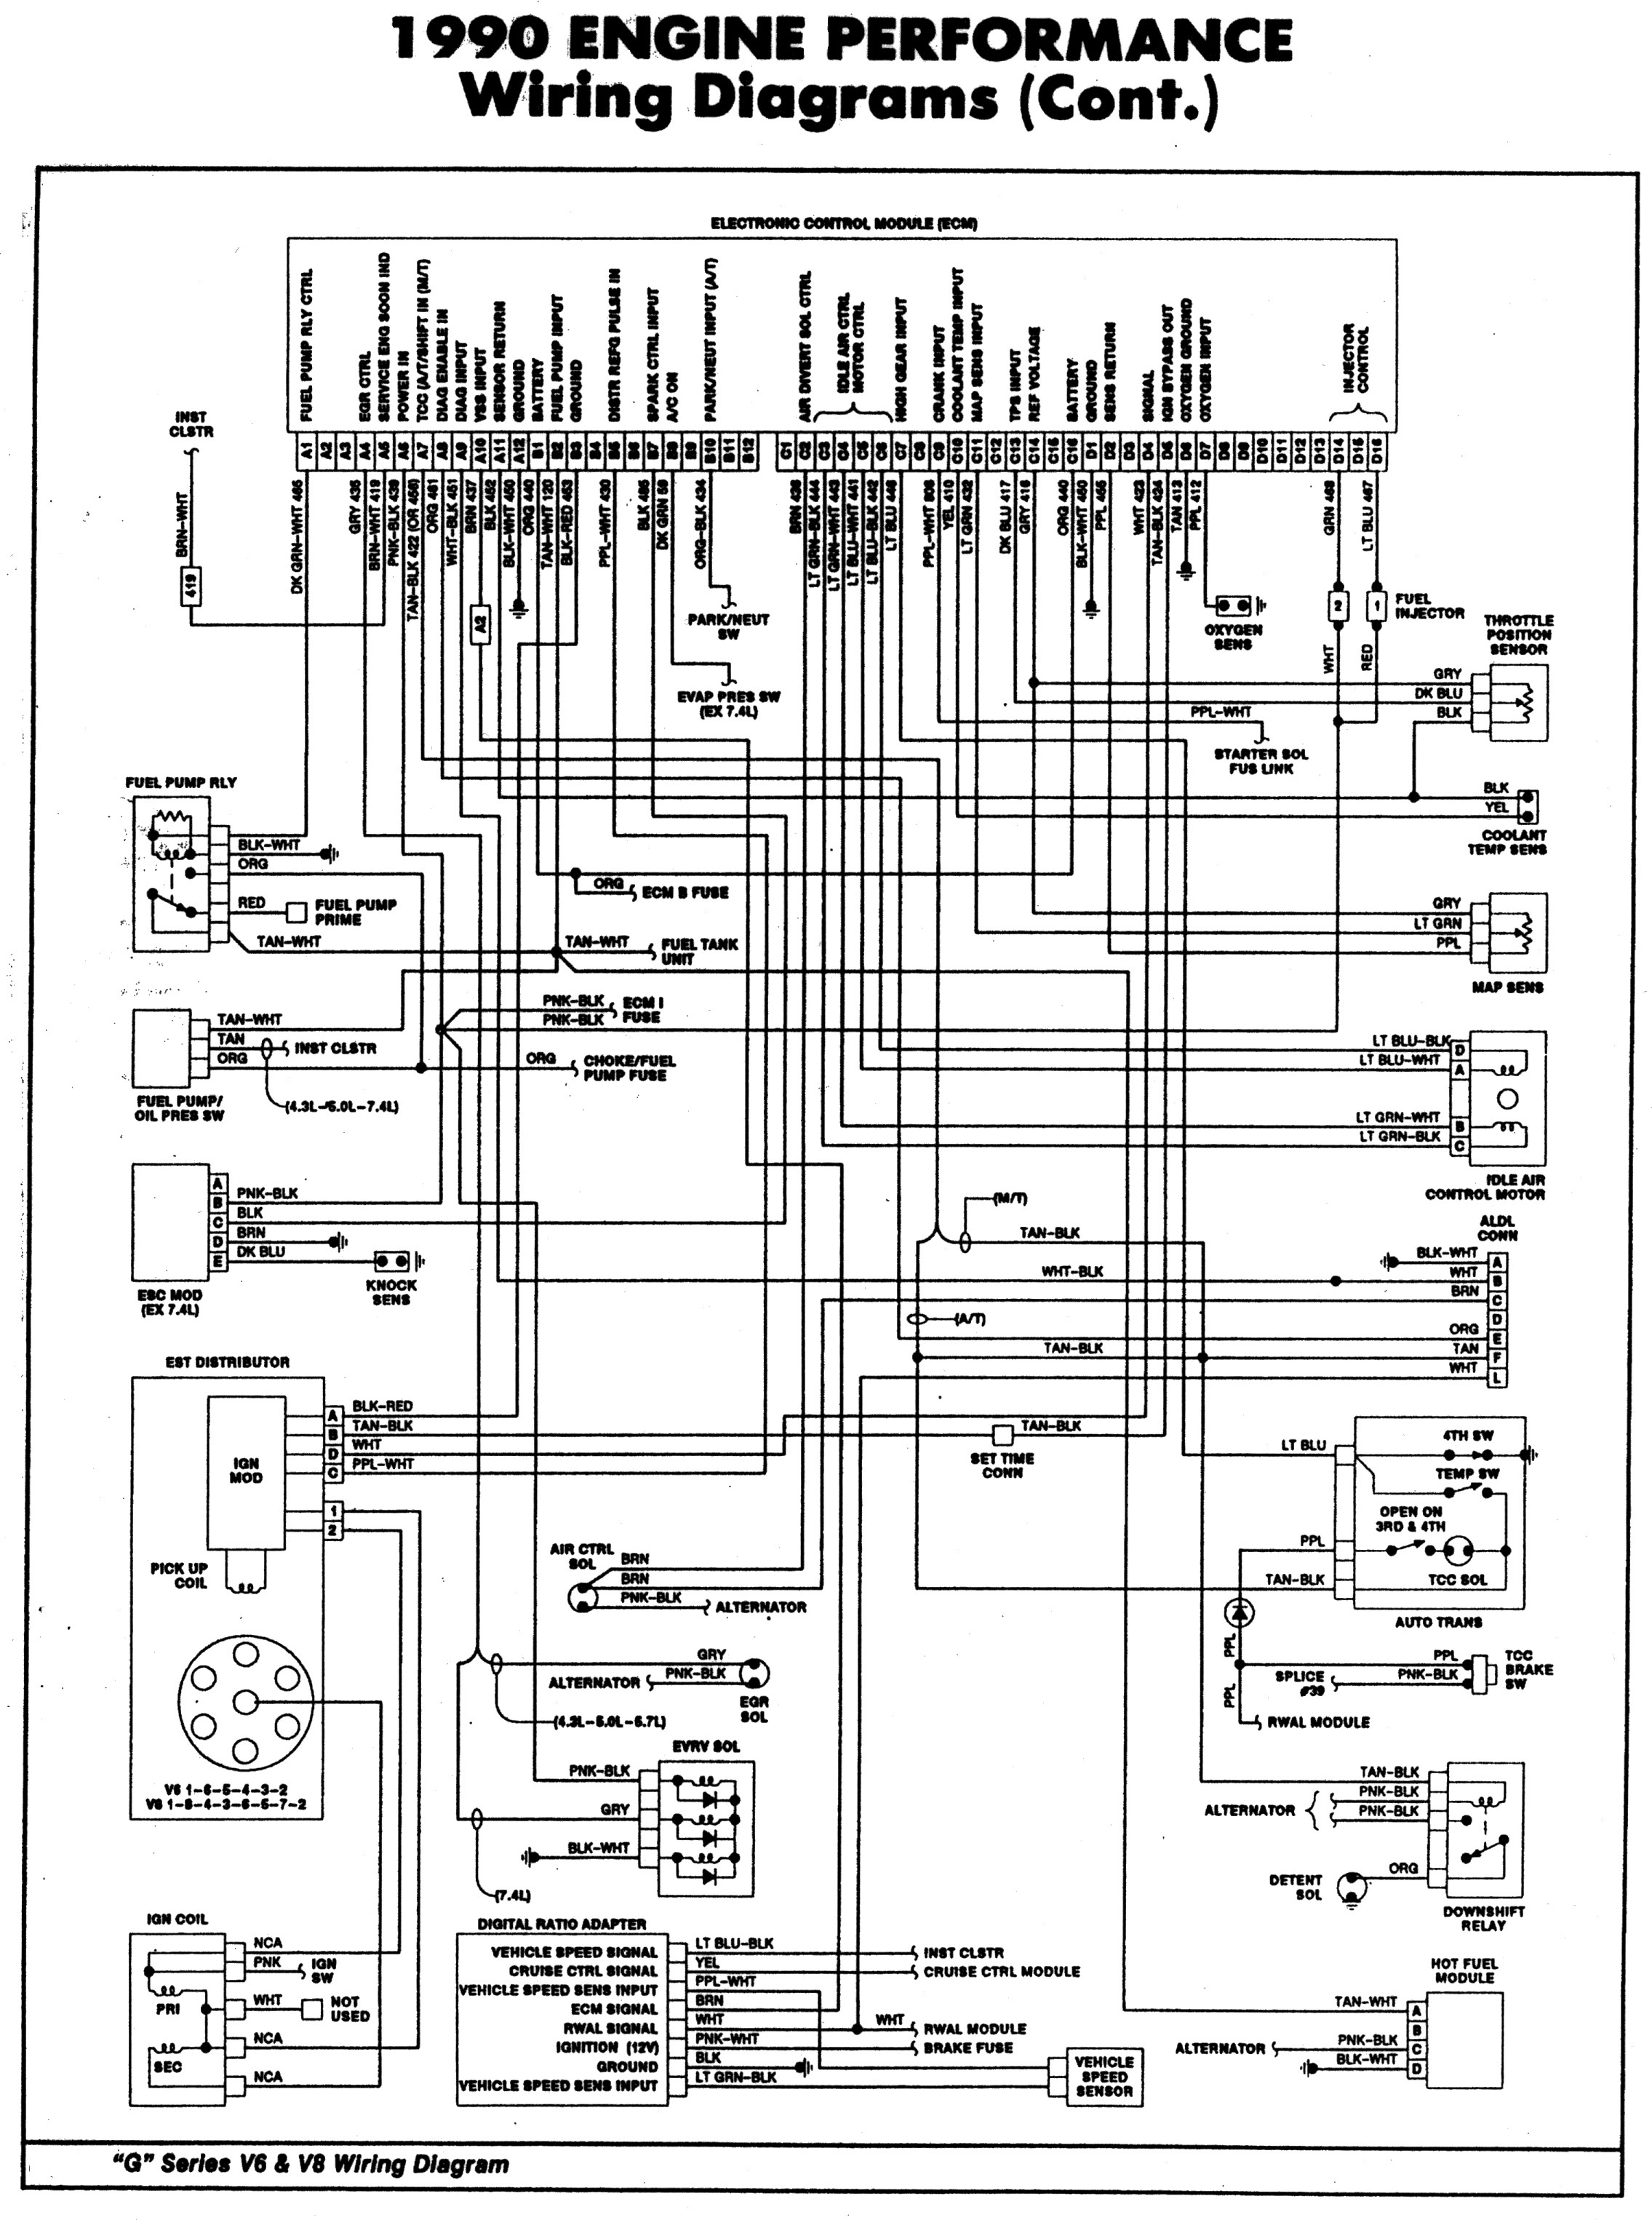 medium resolution of 1989 chevy pickup wiring diagram everything wiring diagram 1989 dodge pickup wiring diagram 89 chevy pickup